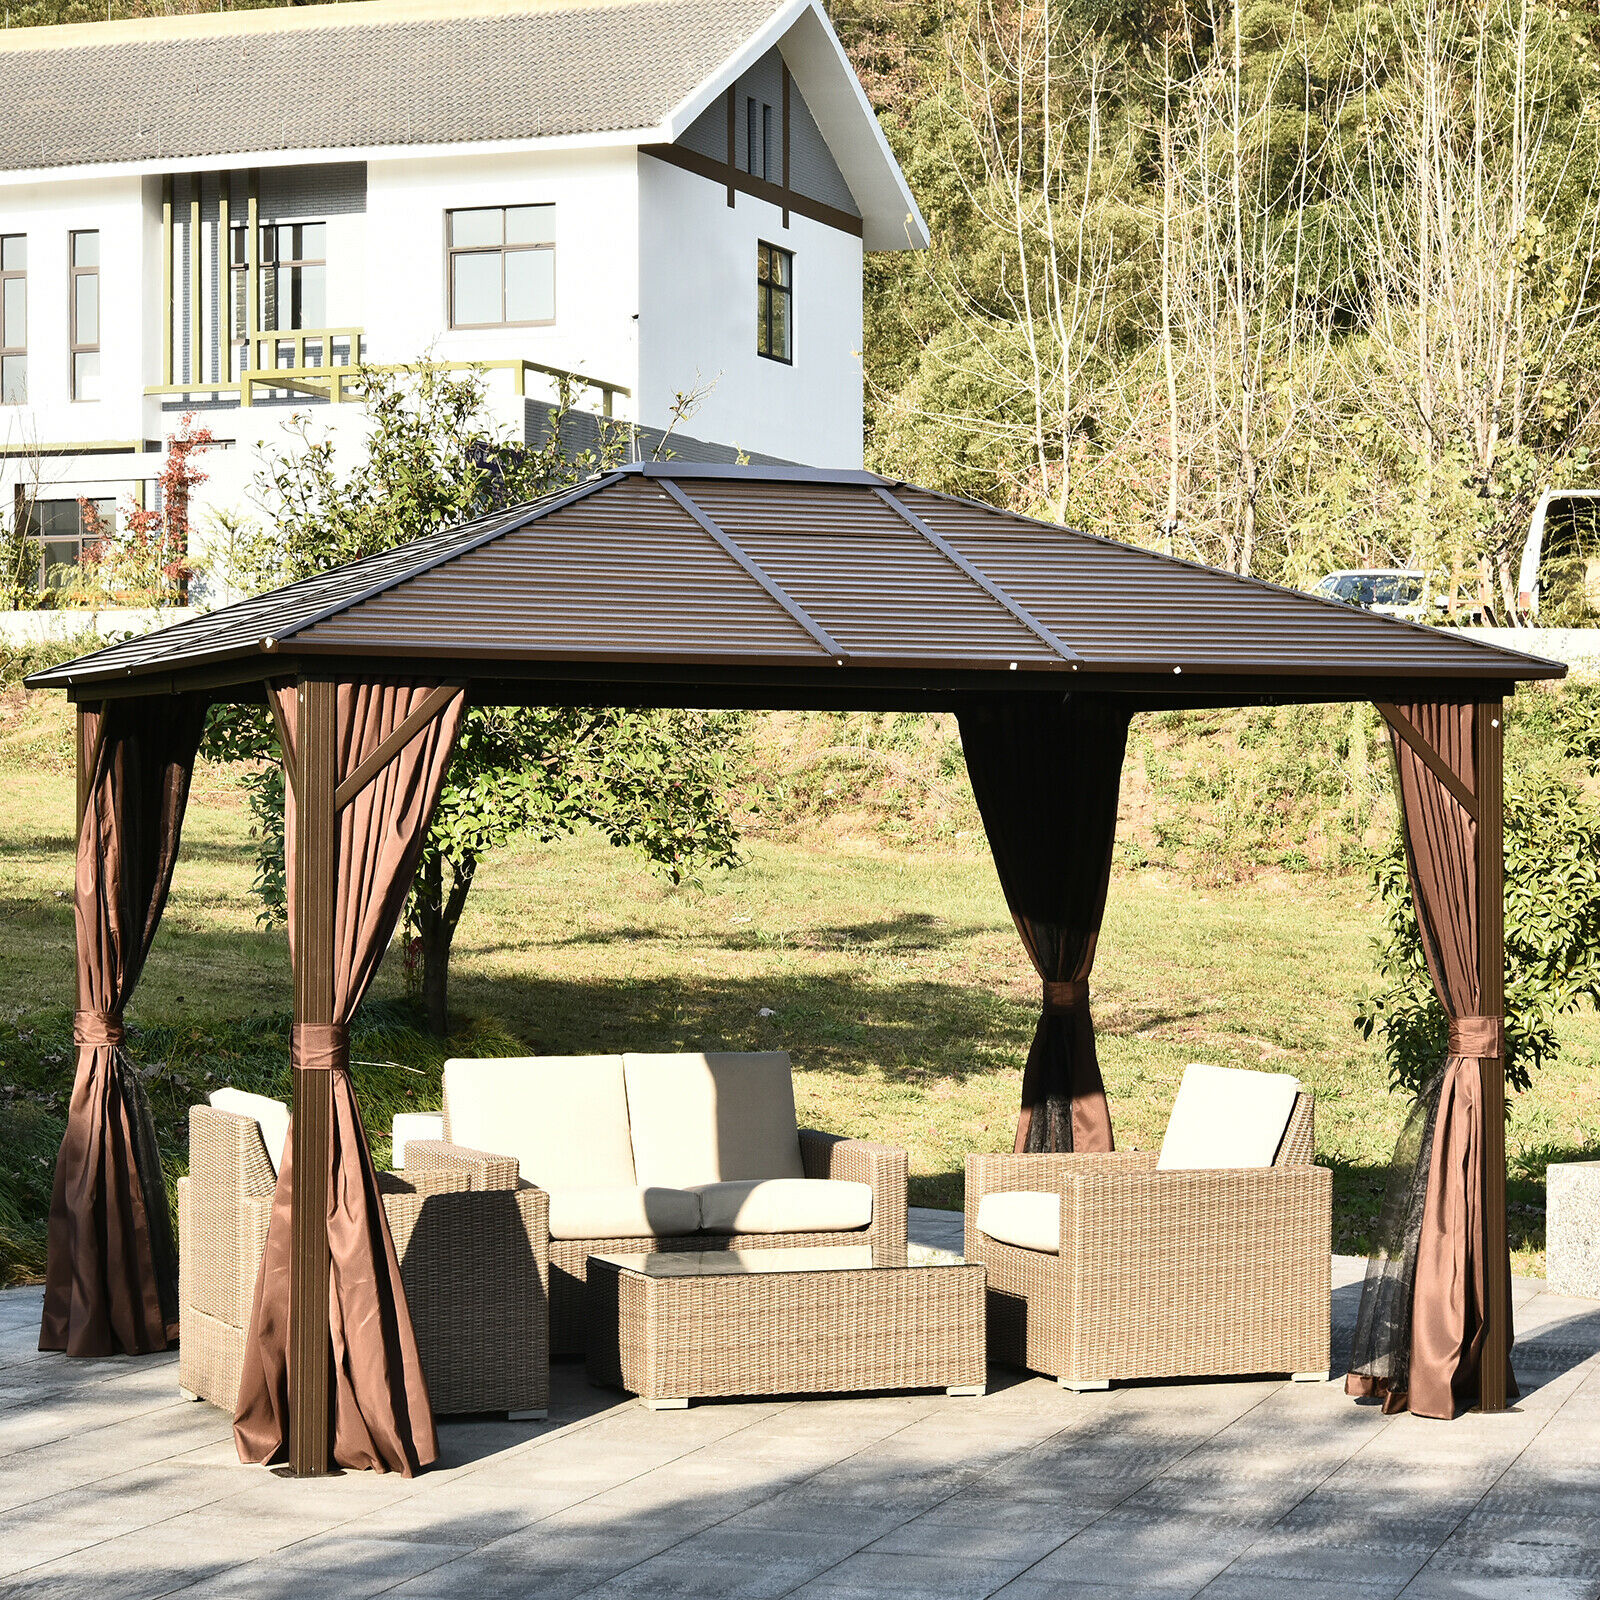 Patio Luxury Gazebo 10x10ft Aluminium Hard Top Outdoor Netting Sidewall Curtains For Sale Online Ebay